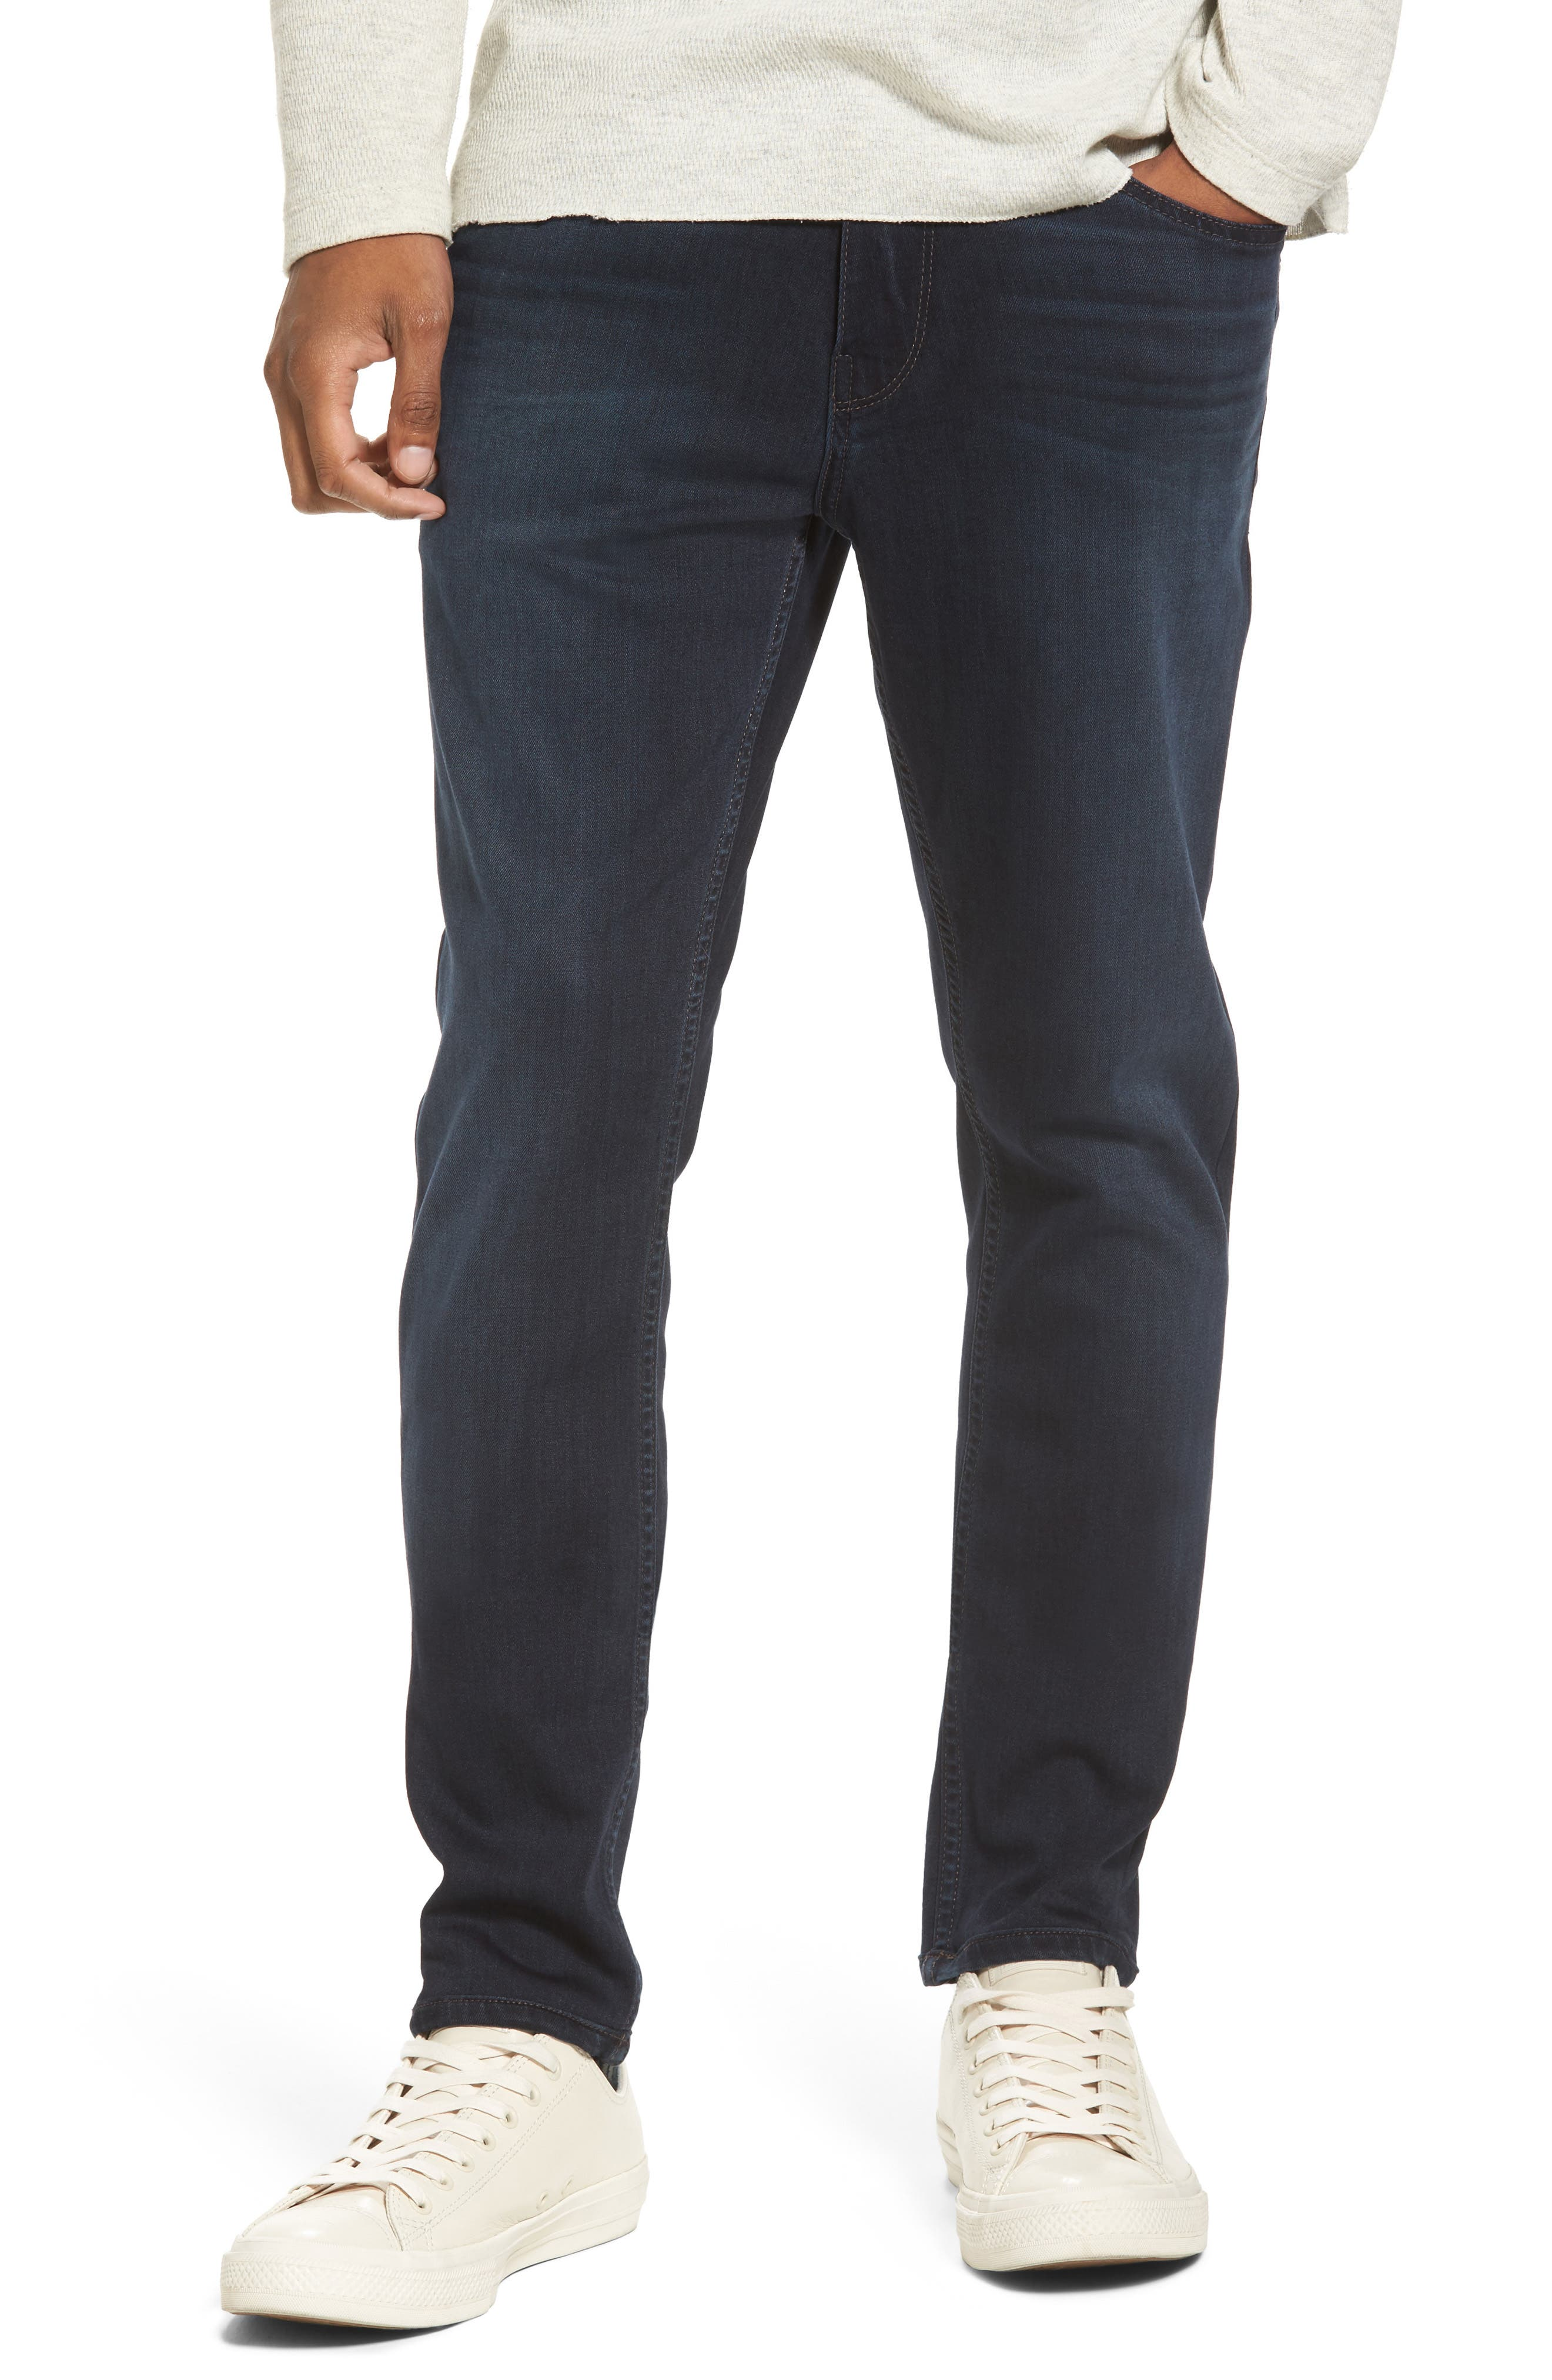 Croft Skinny Fit Jeans,                         Main,                         color, Cecil